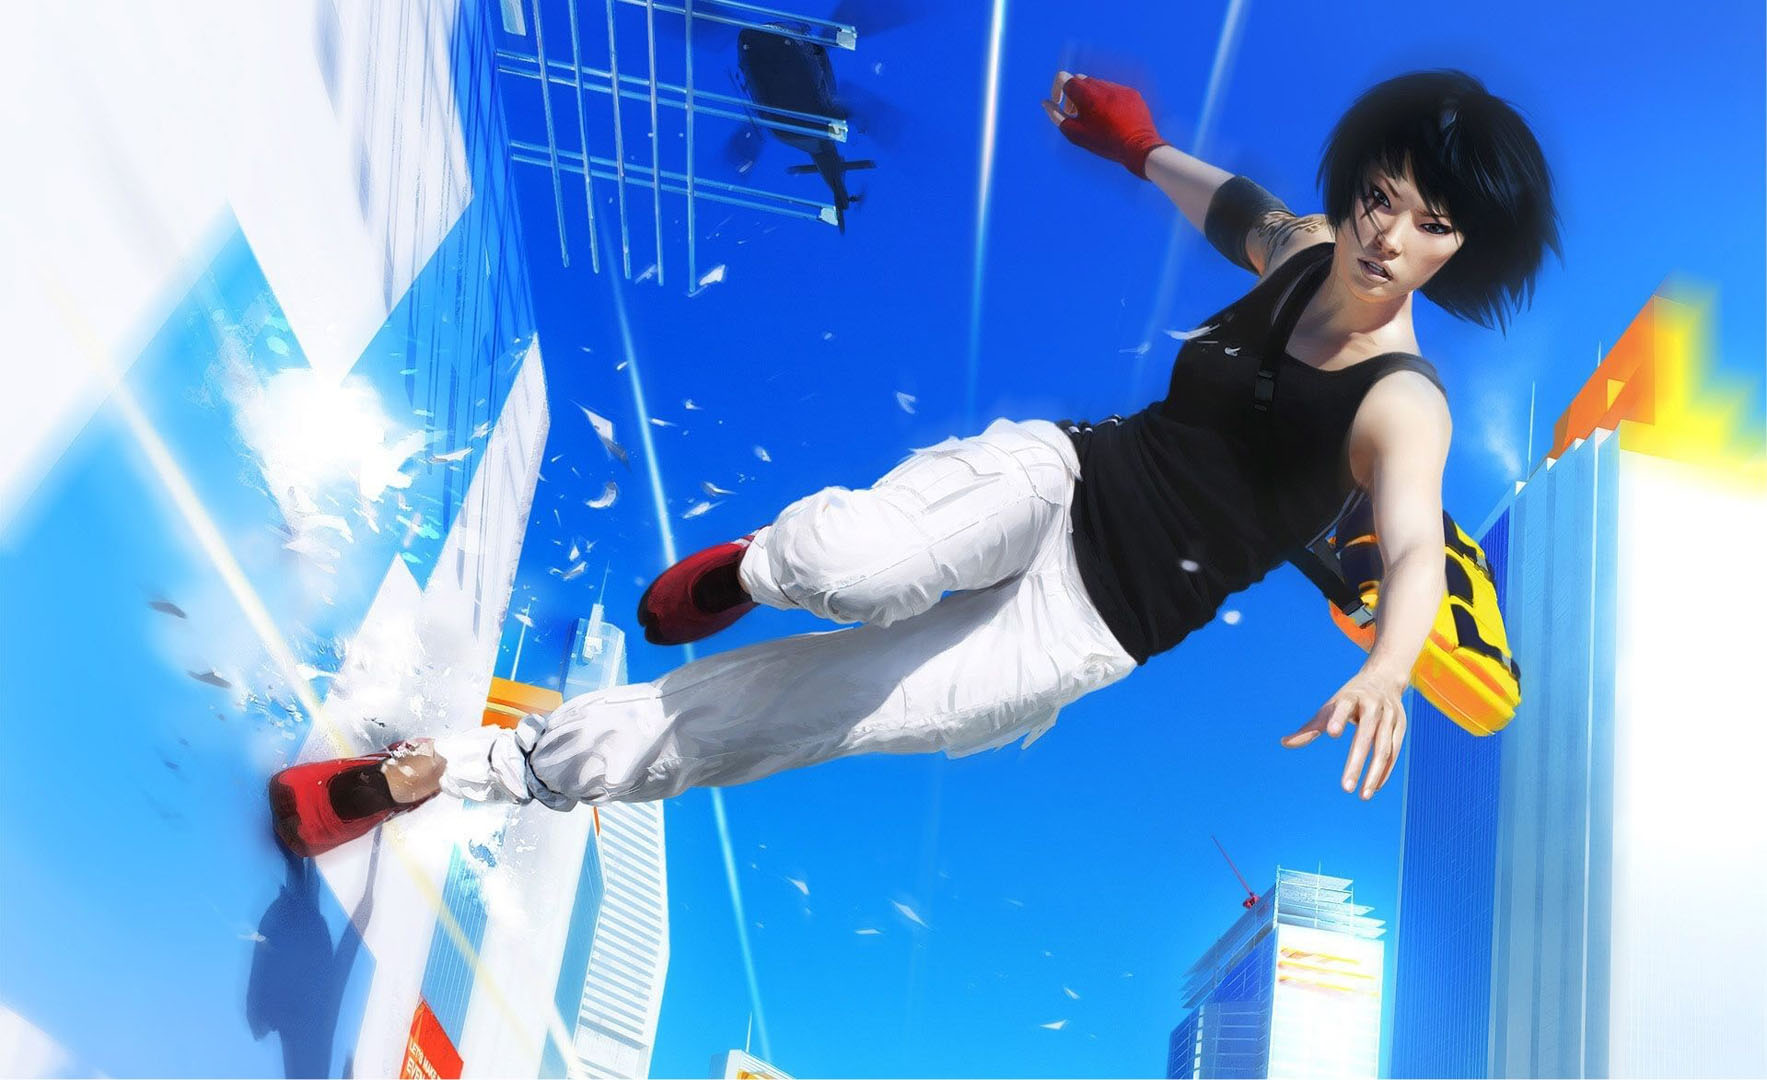 Parkour Running   Action Games Wallpaper Image featuring Mirrors 1767x1080